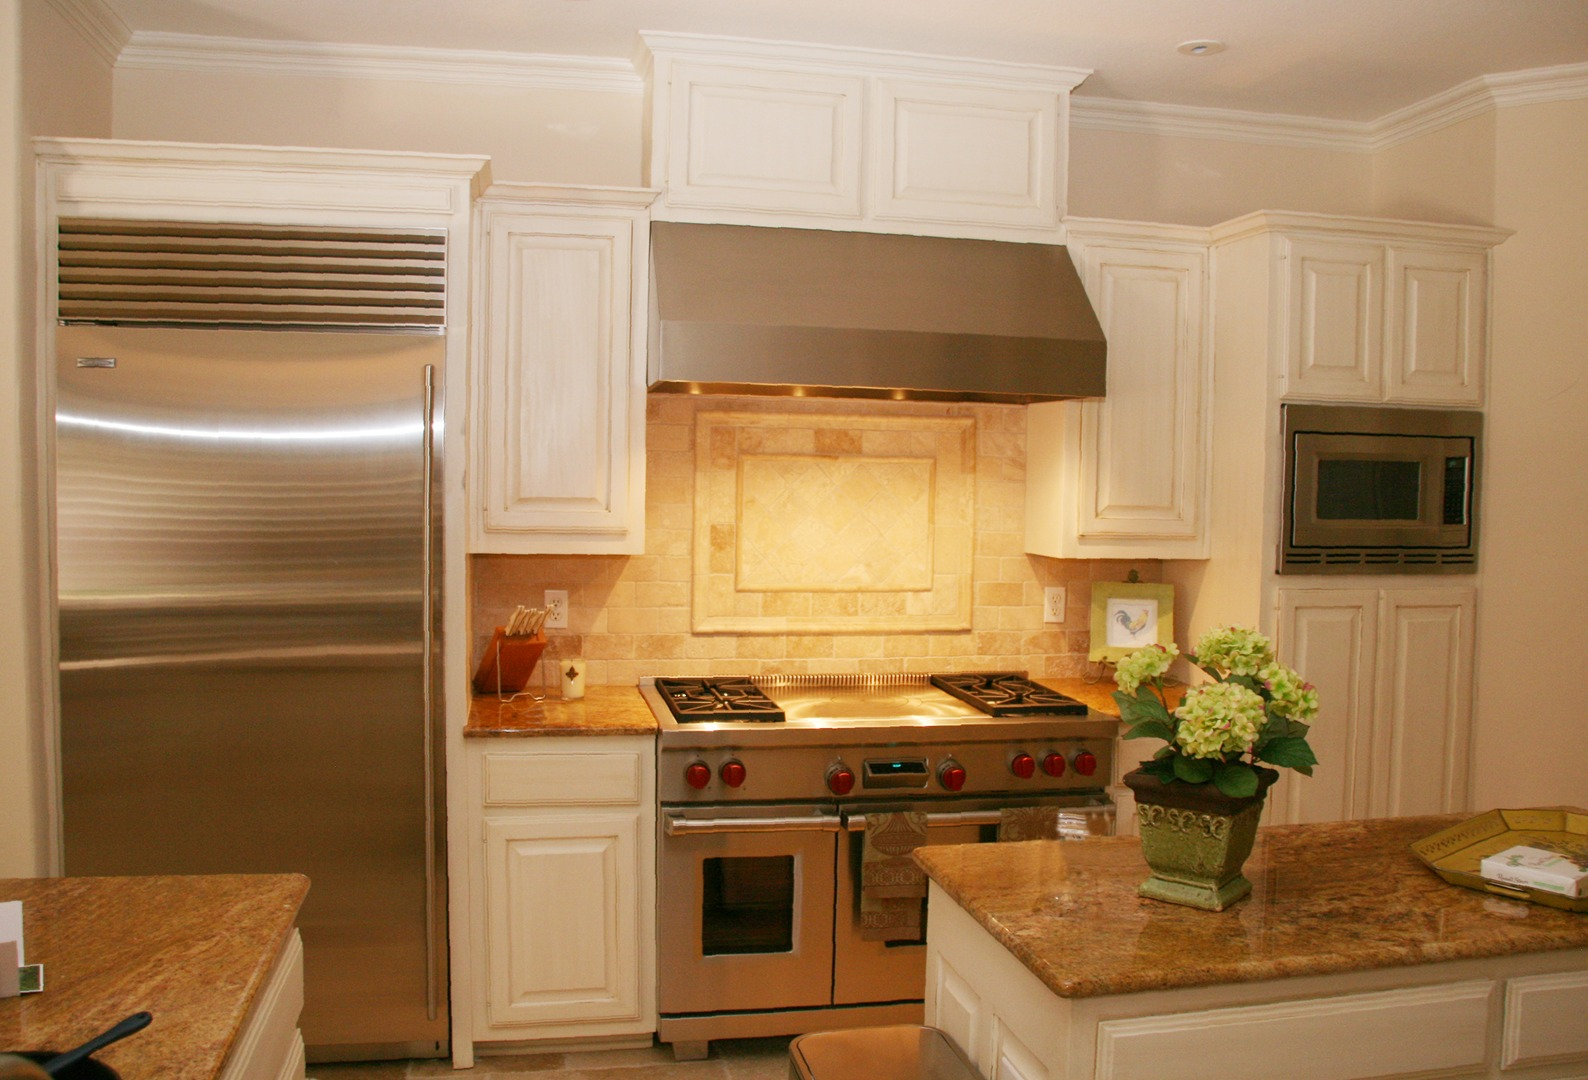 Kitchen Remodel San Antonio House Painting Bathroom Remodeling And Kitchen Remodeling